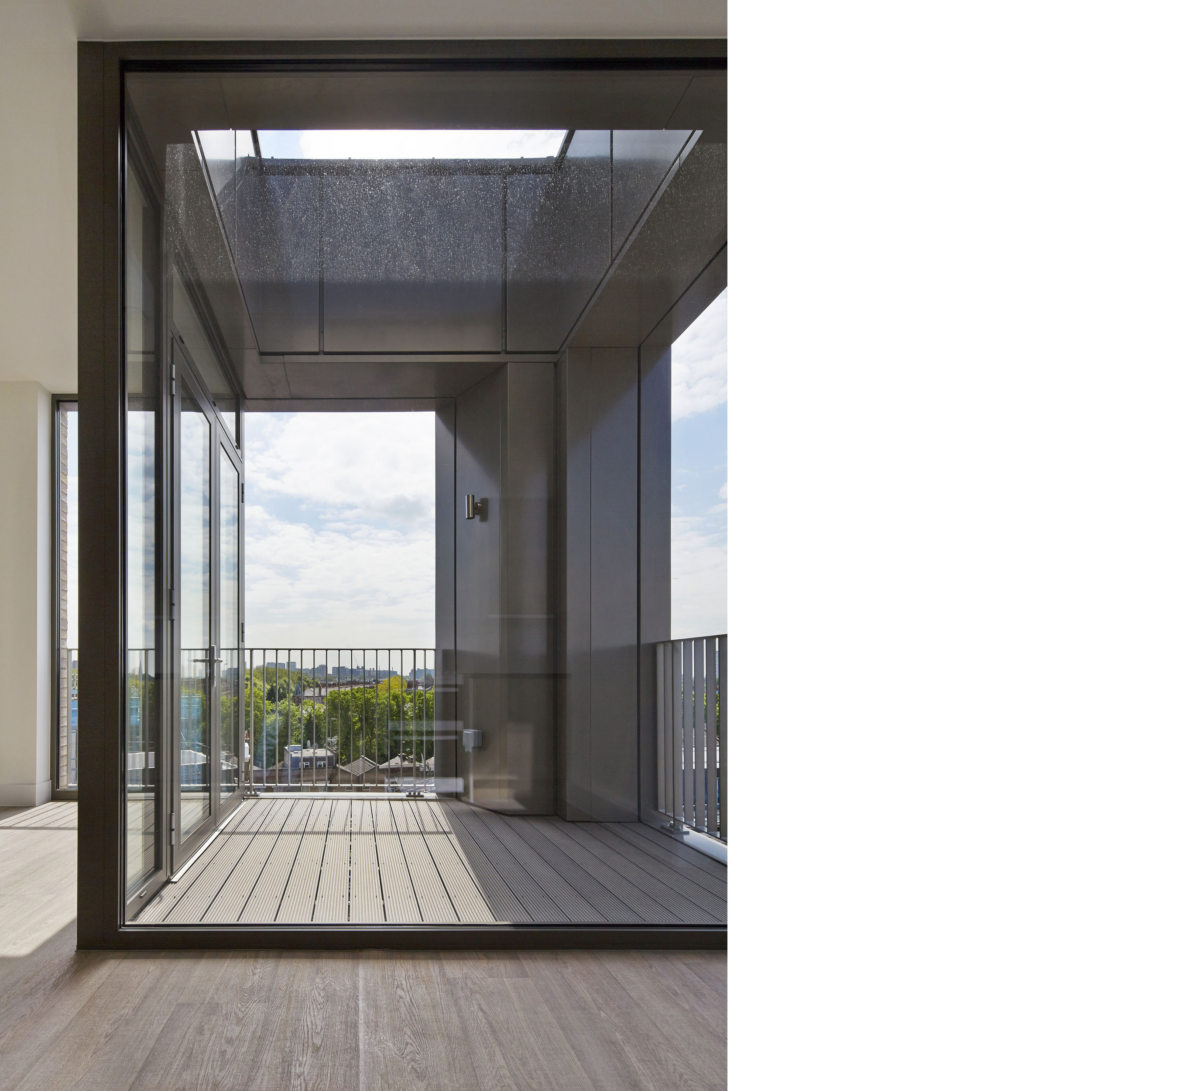 Alison Brooks Architects _ South Kilburn Estate Regeneration _ Bronte and Fielding _ Photo Interior Balcony